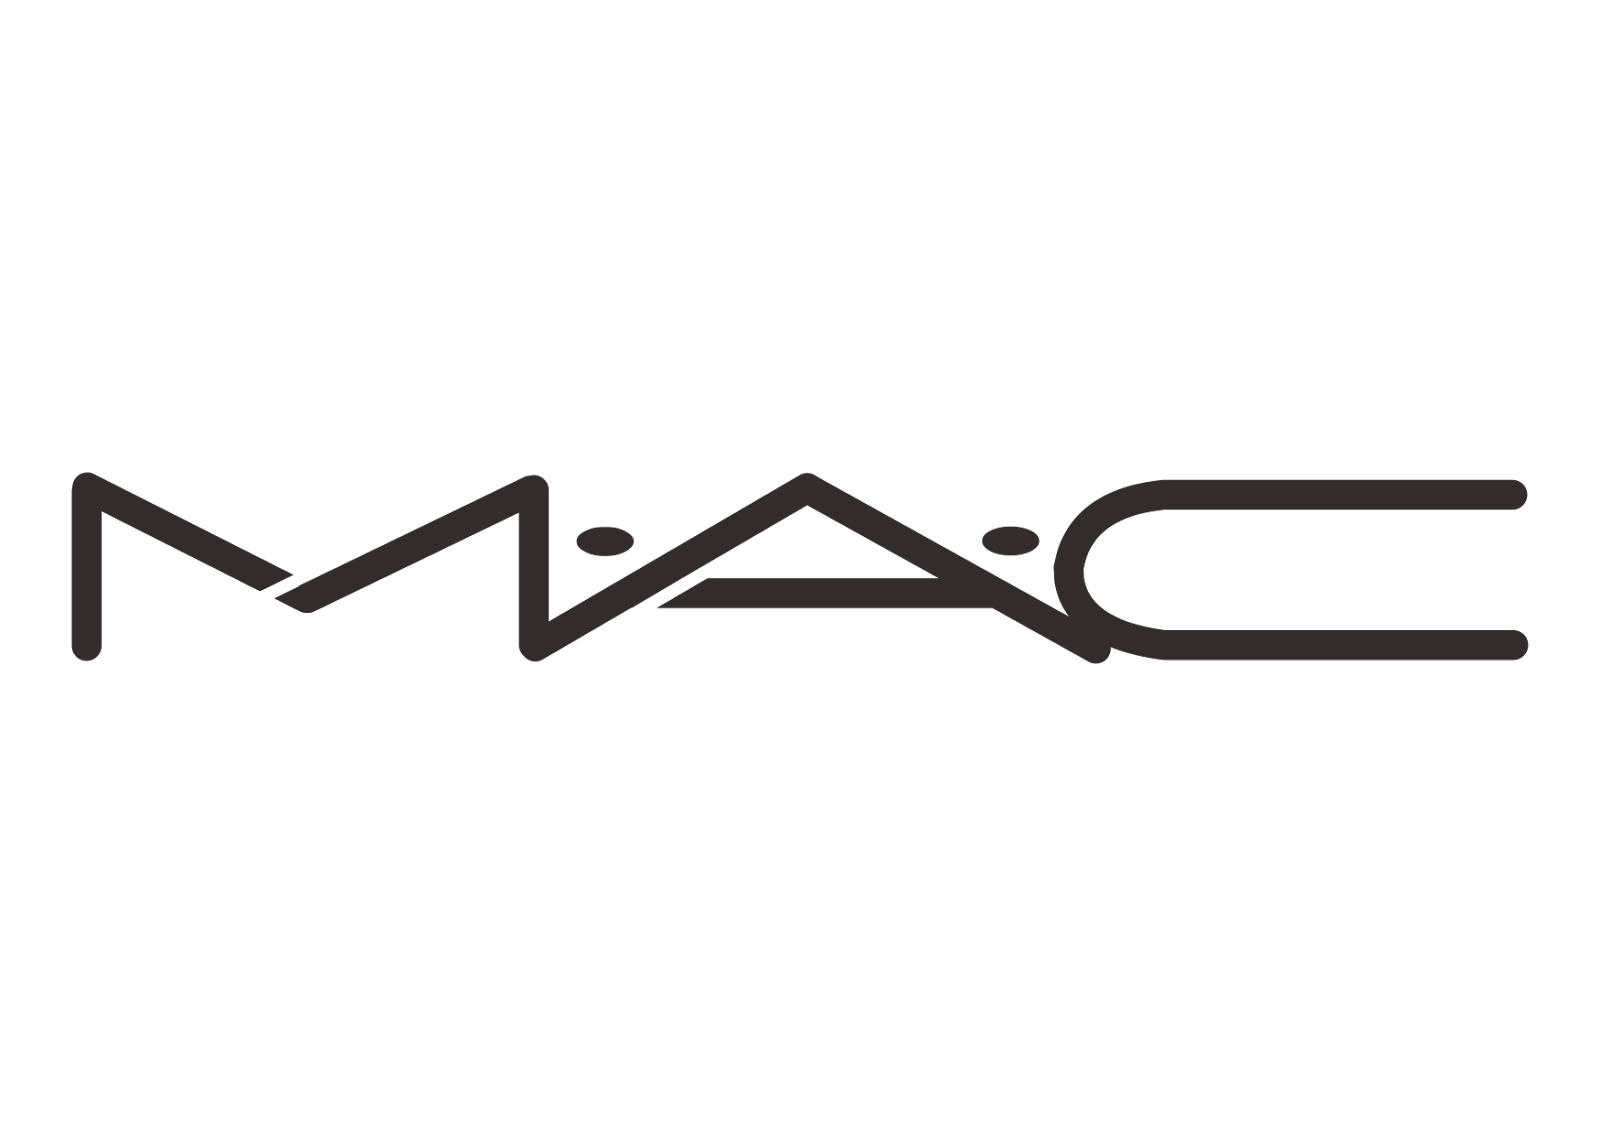 Mac cosmetics logo vector format cdr ai eps svg pdf png Free vector program mac